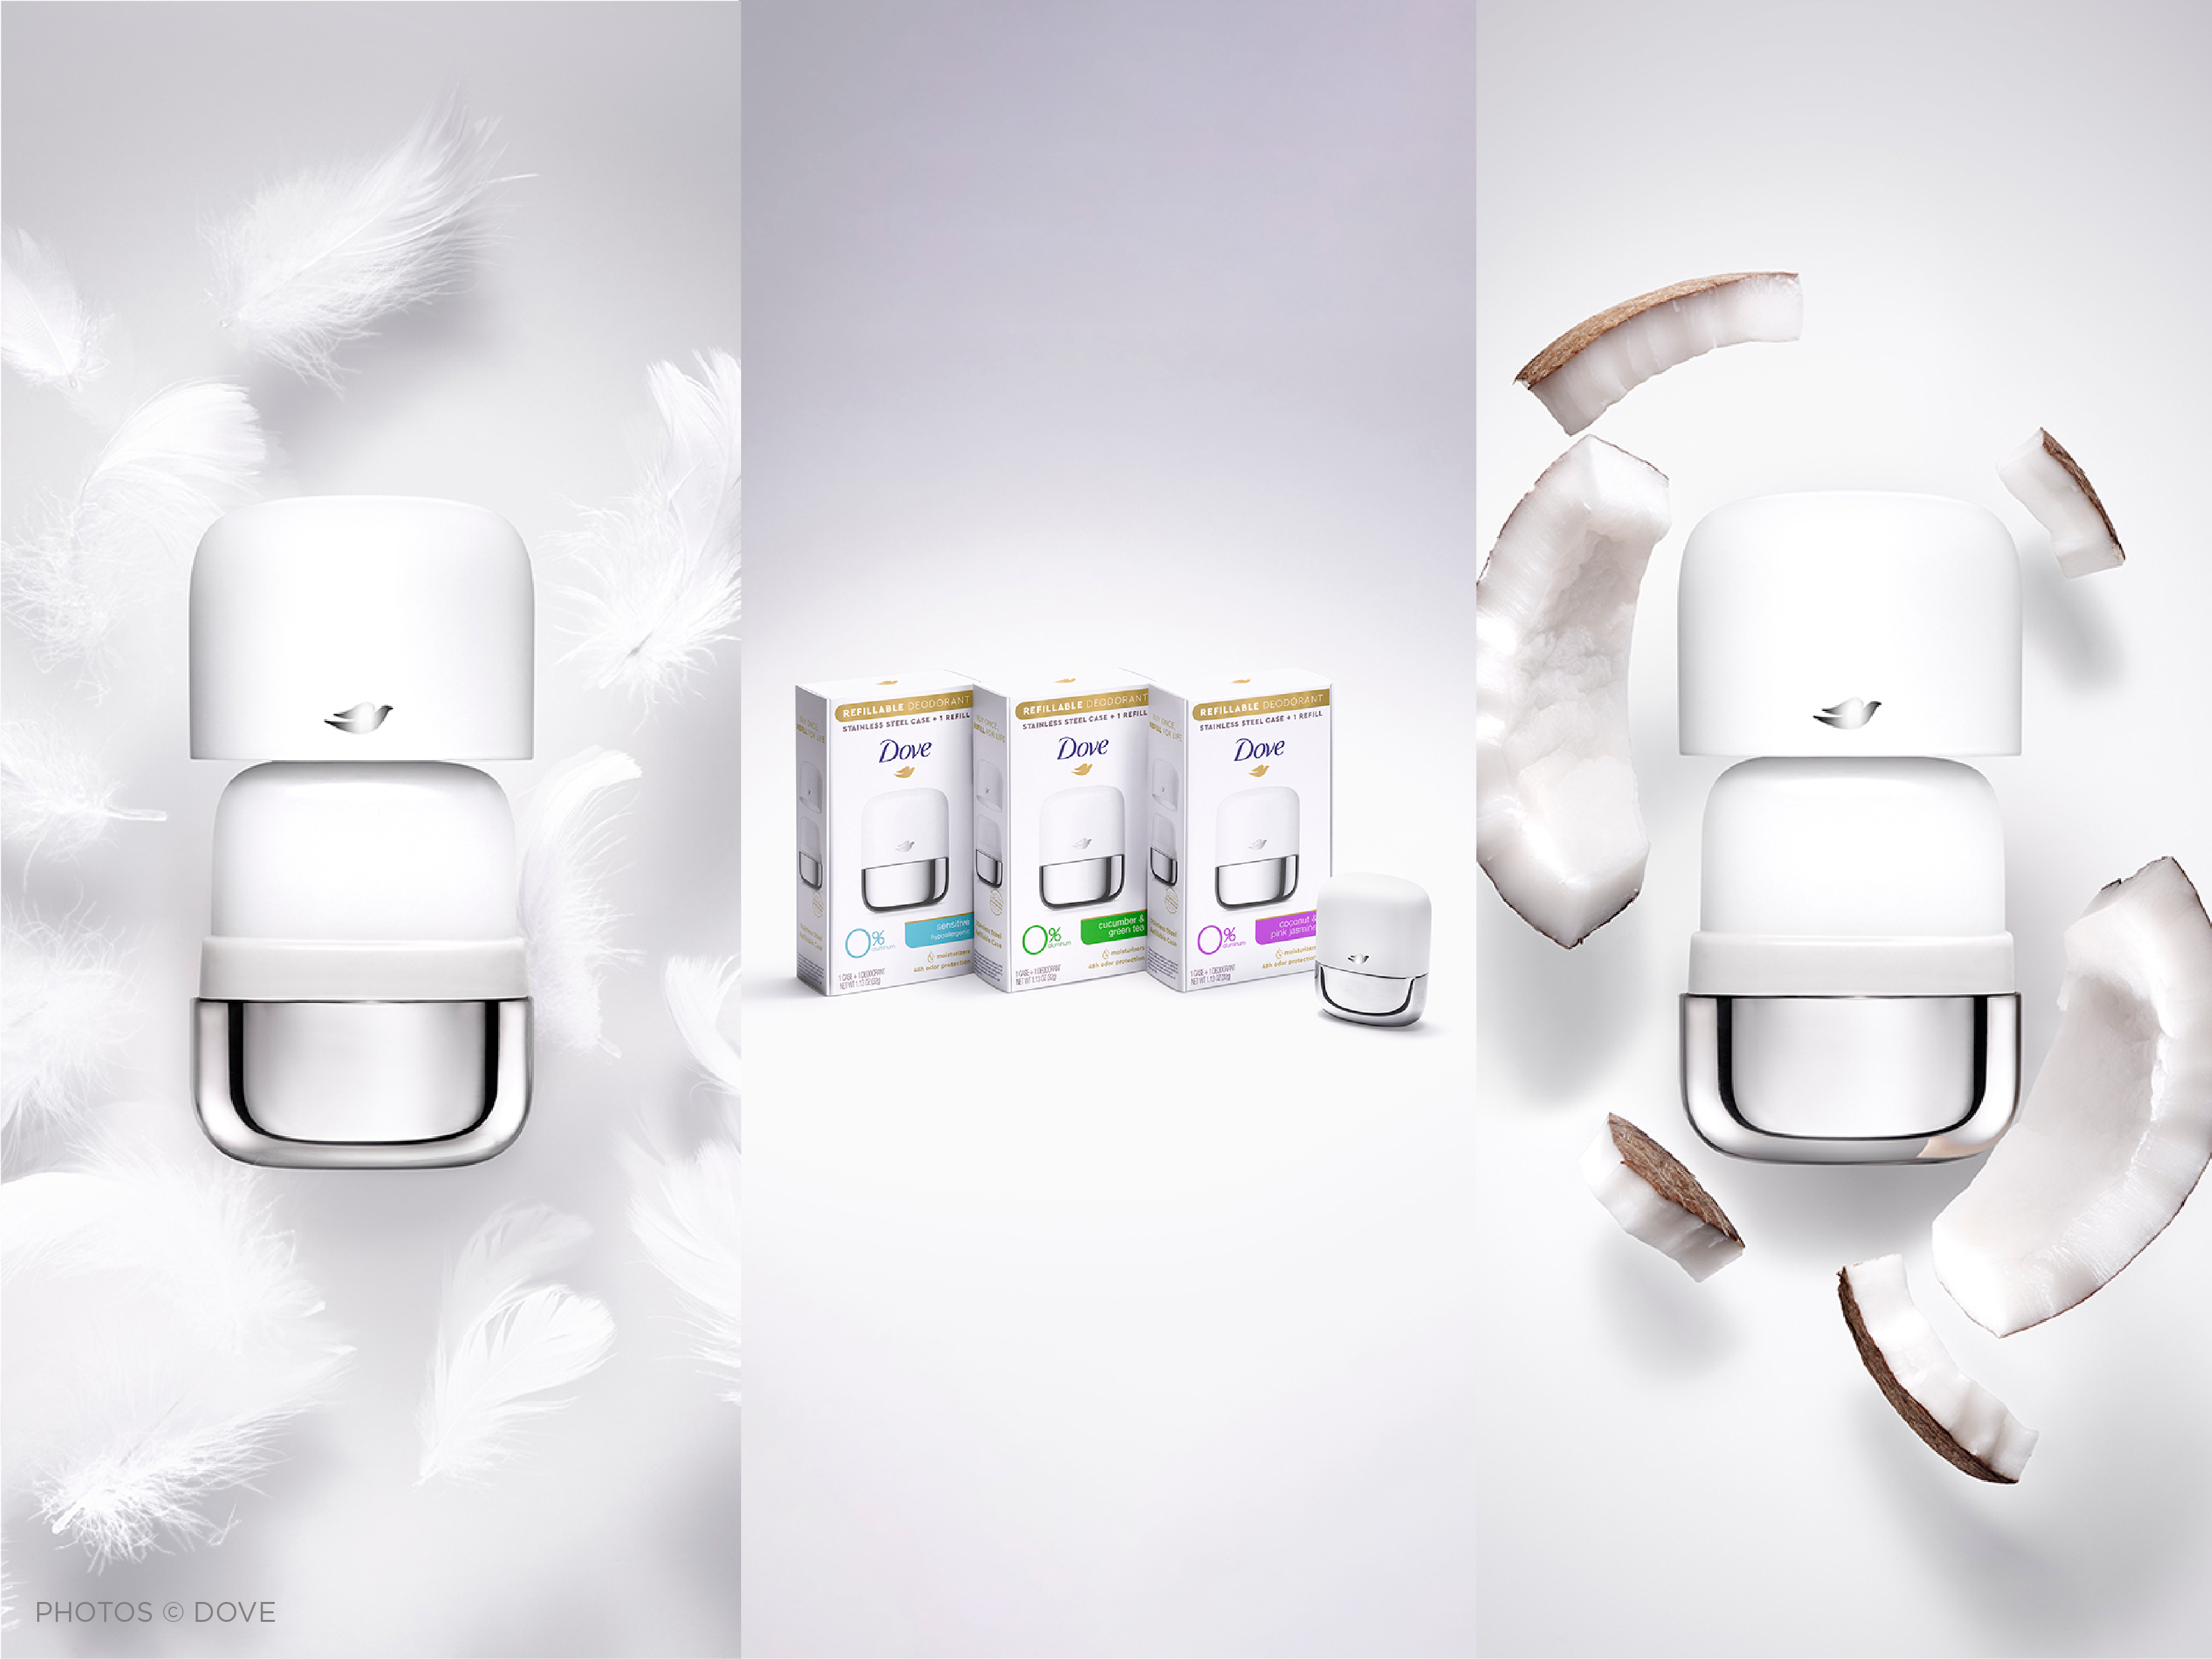 triptych image featuring Dove's new refillable deodorant